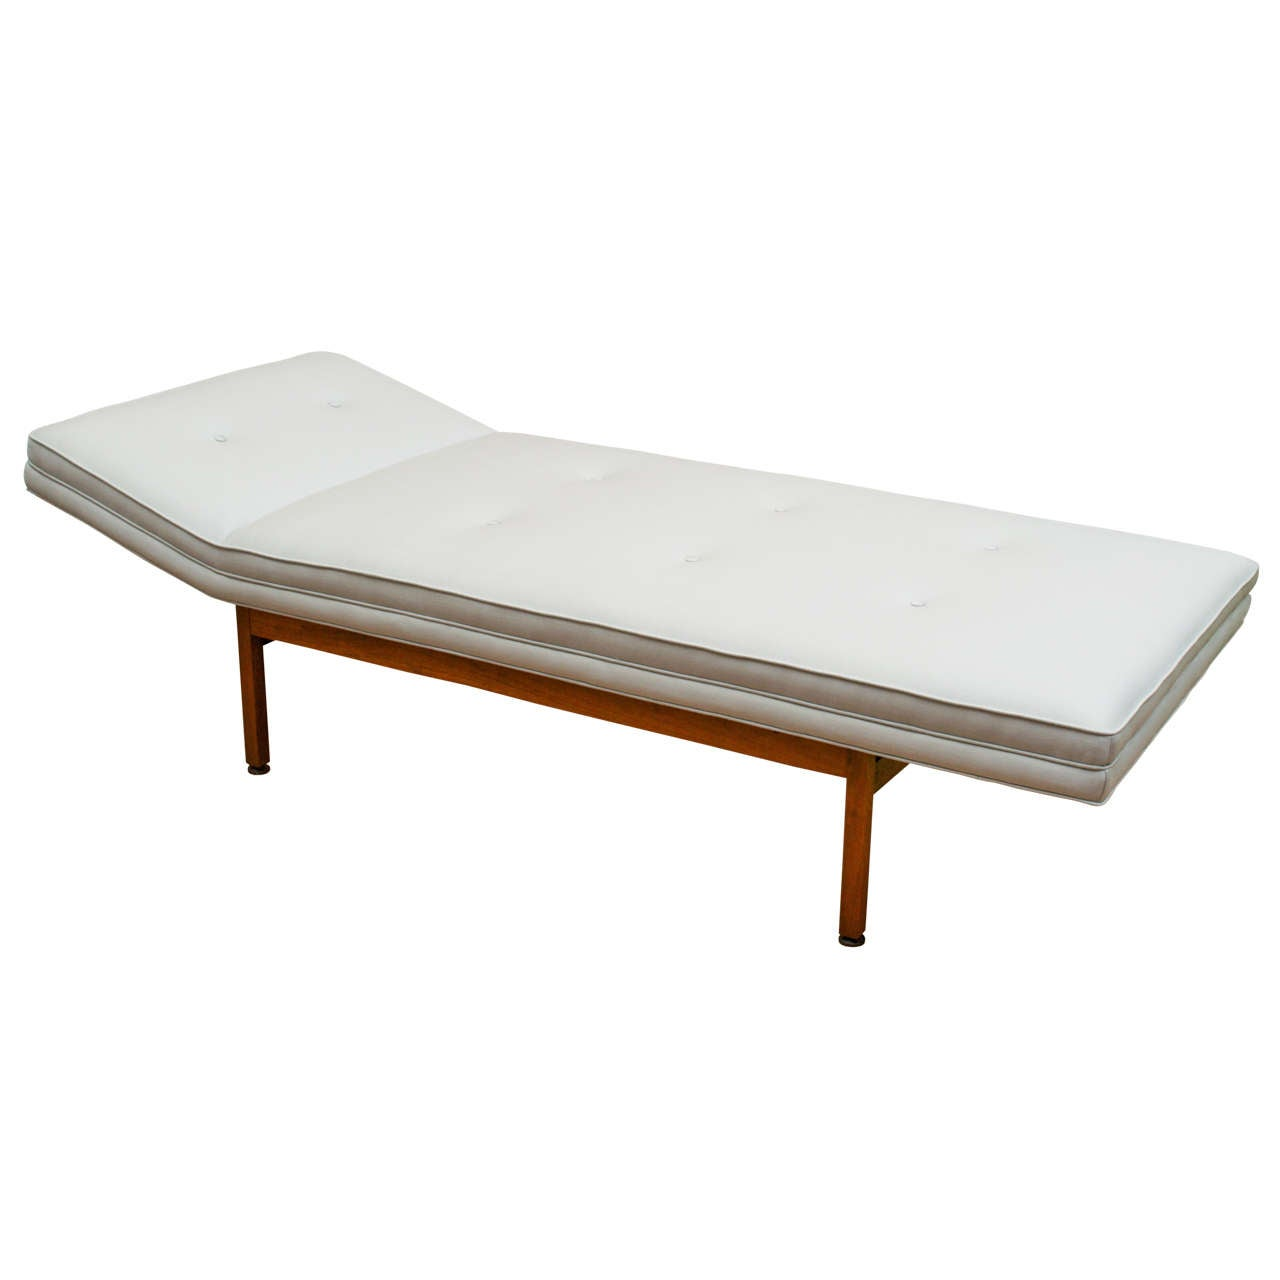 Mid century chaise lounge at 1stdibs for Chaise longue or chaise lounge